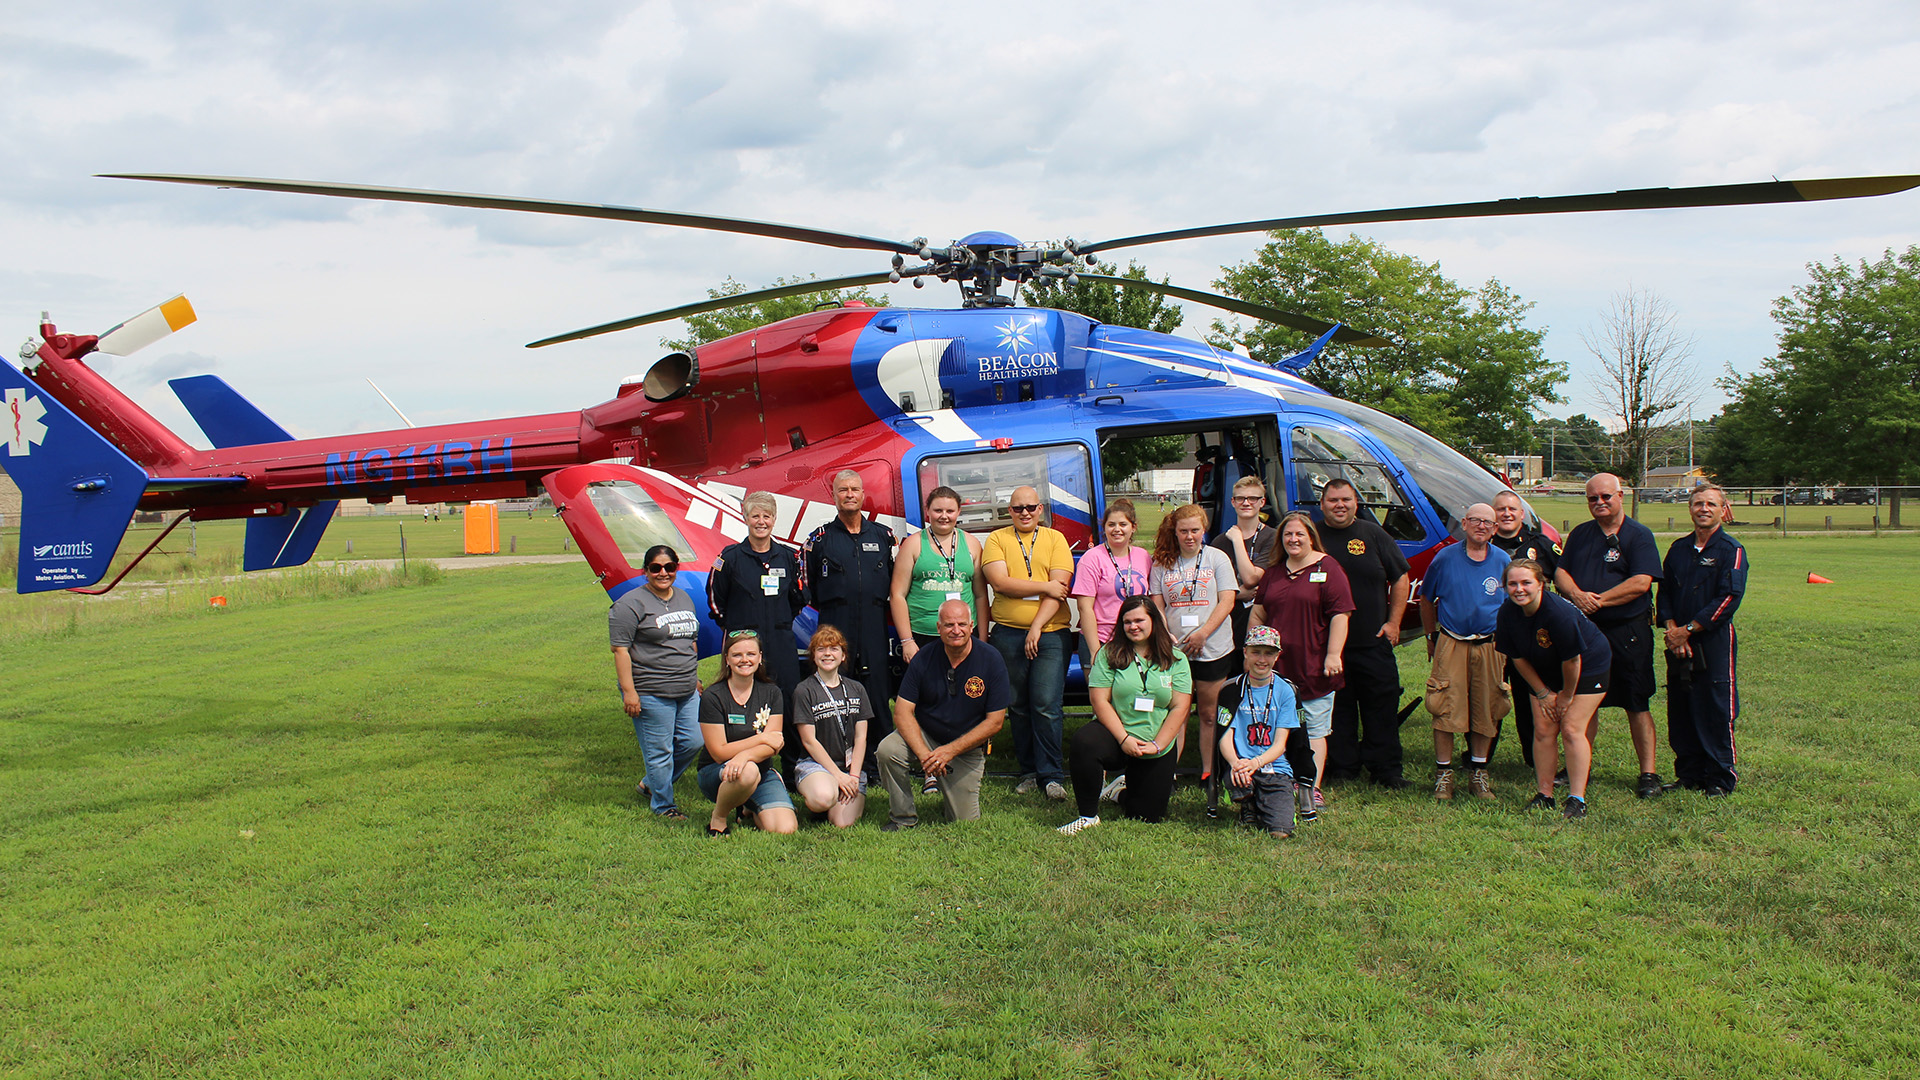 Students in front of a helicopter